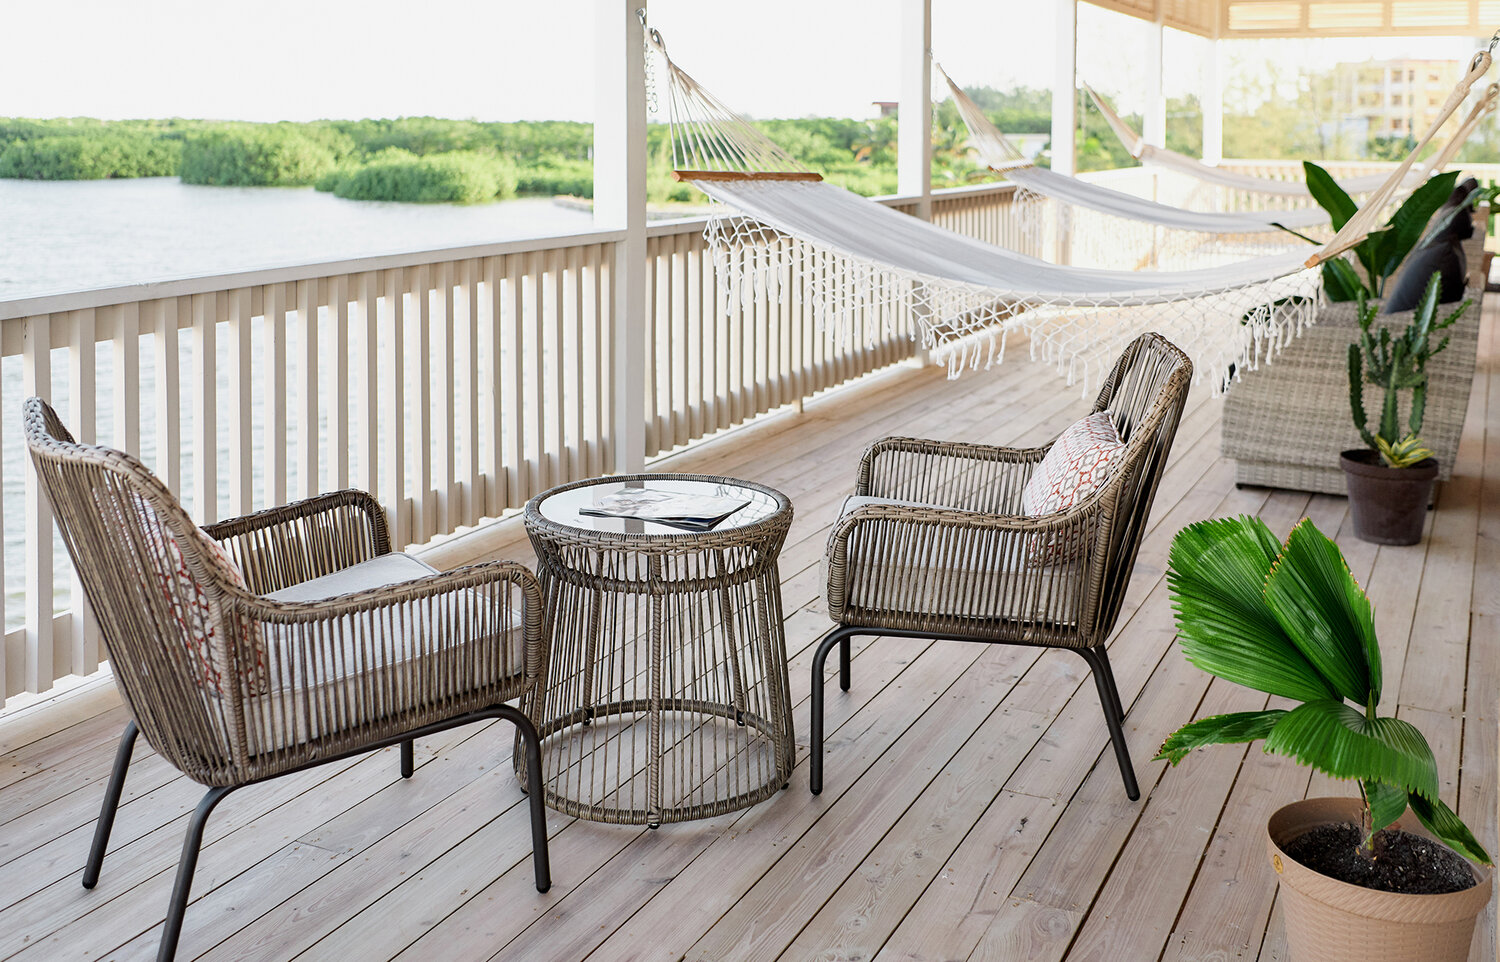 Your very own Balcony at Salt Life Belize, Ambergris Caye